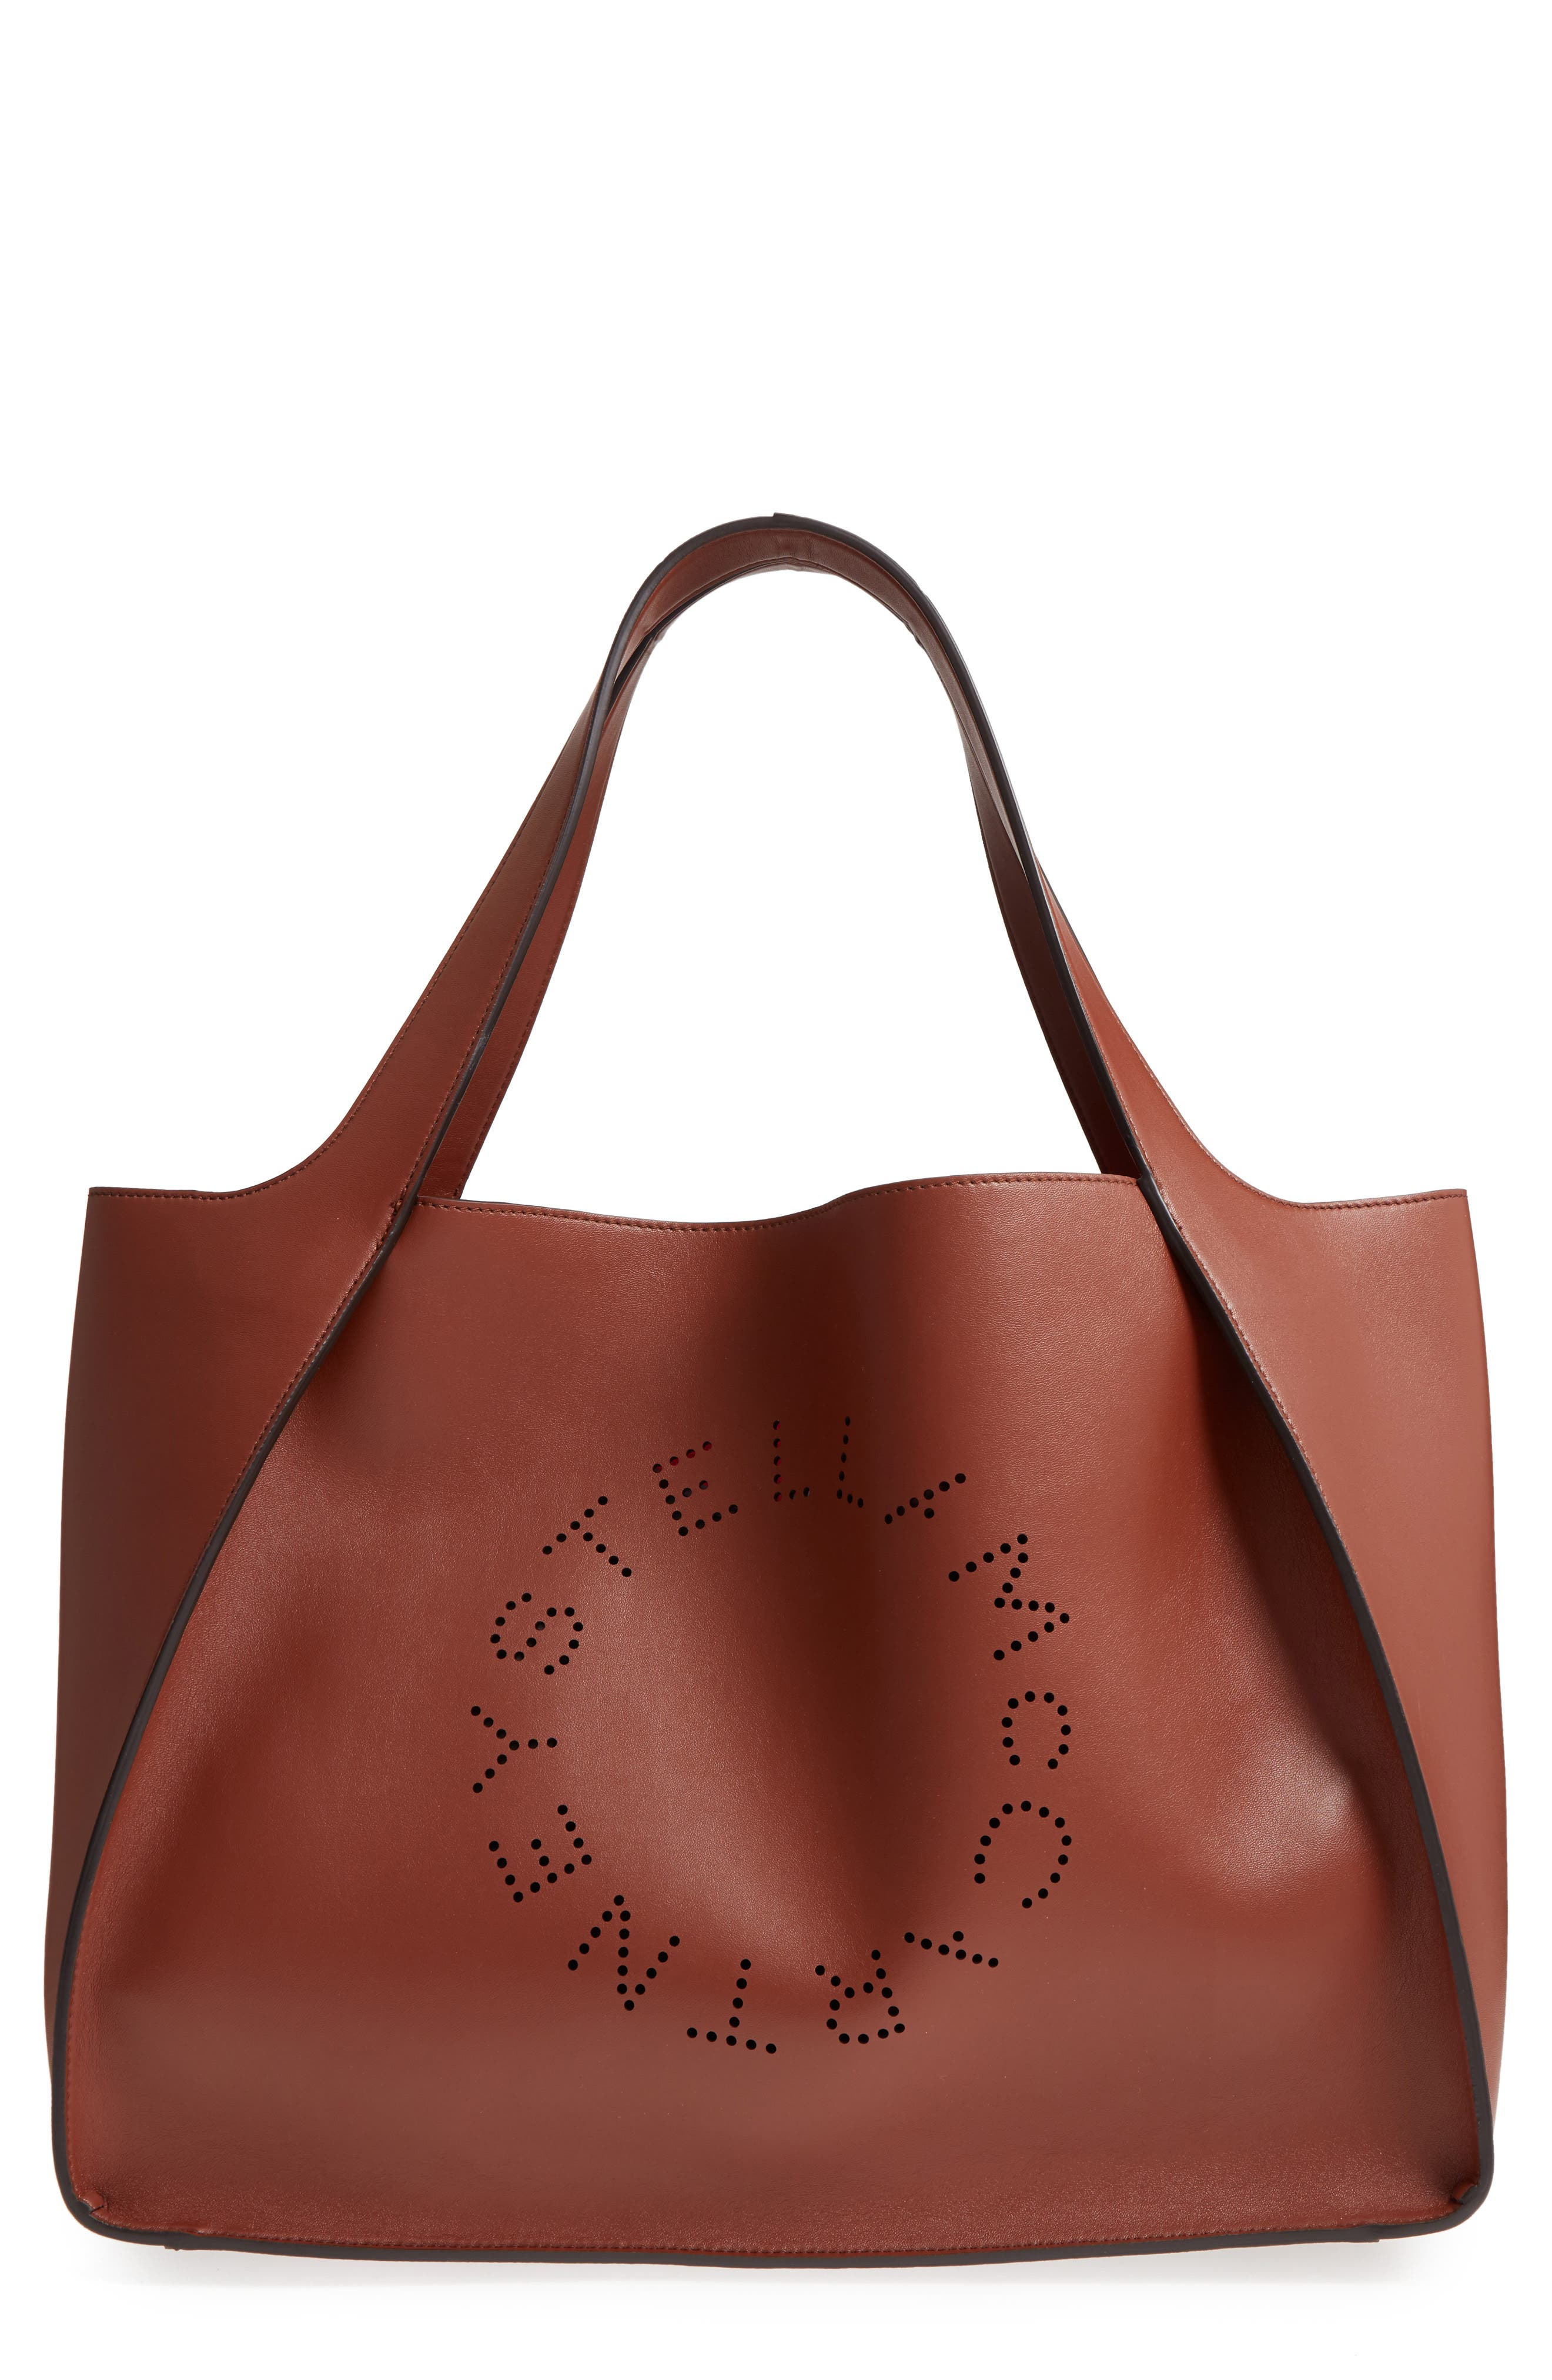 Main Image - Stella McCartney Medium Perforated Logo Faux Leather Tote